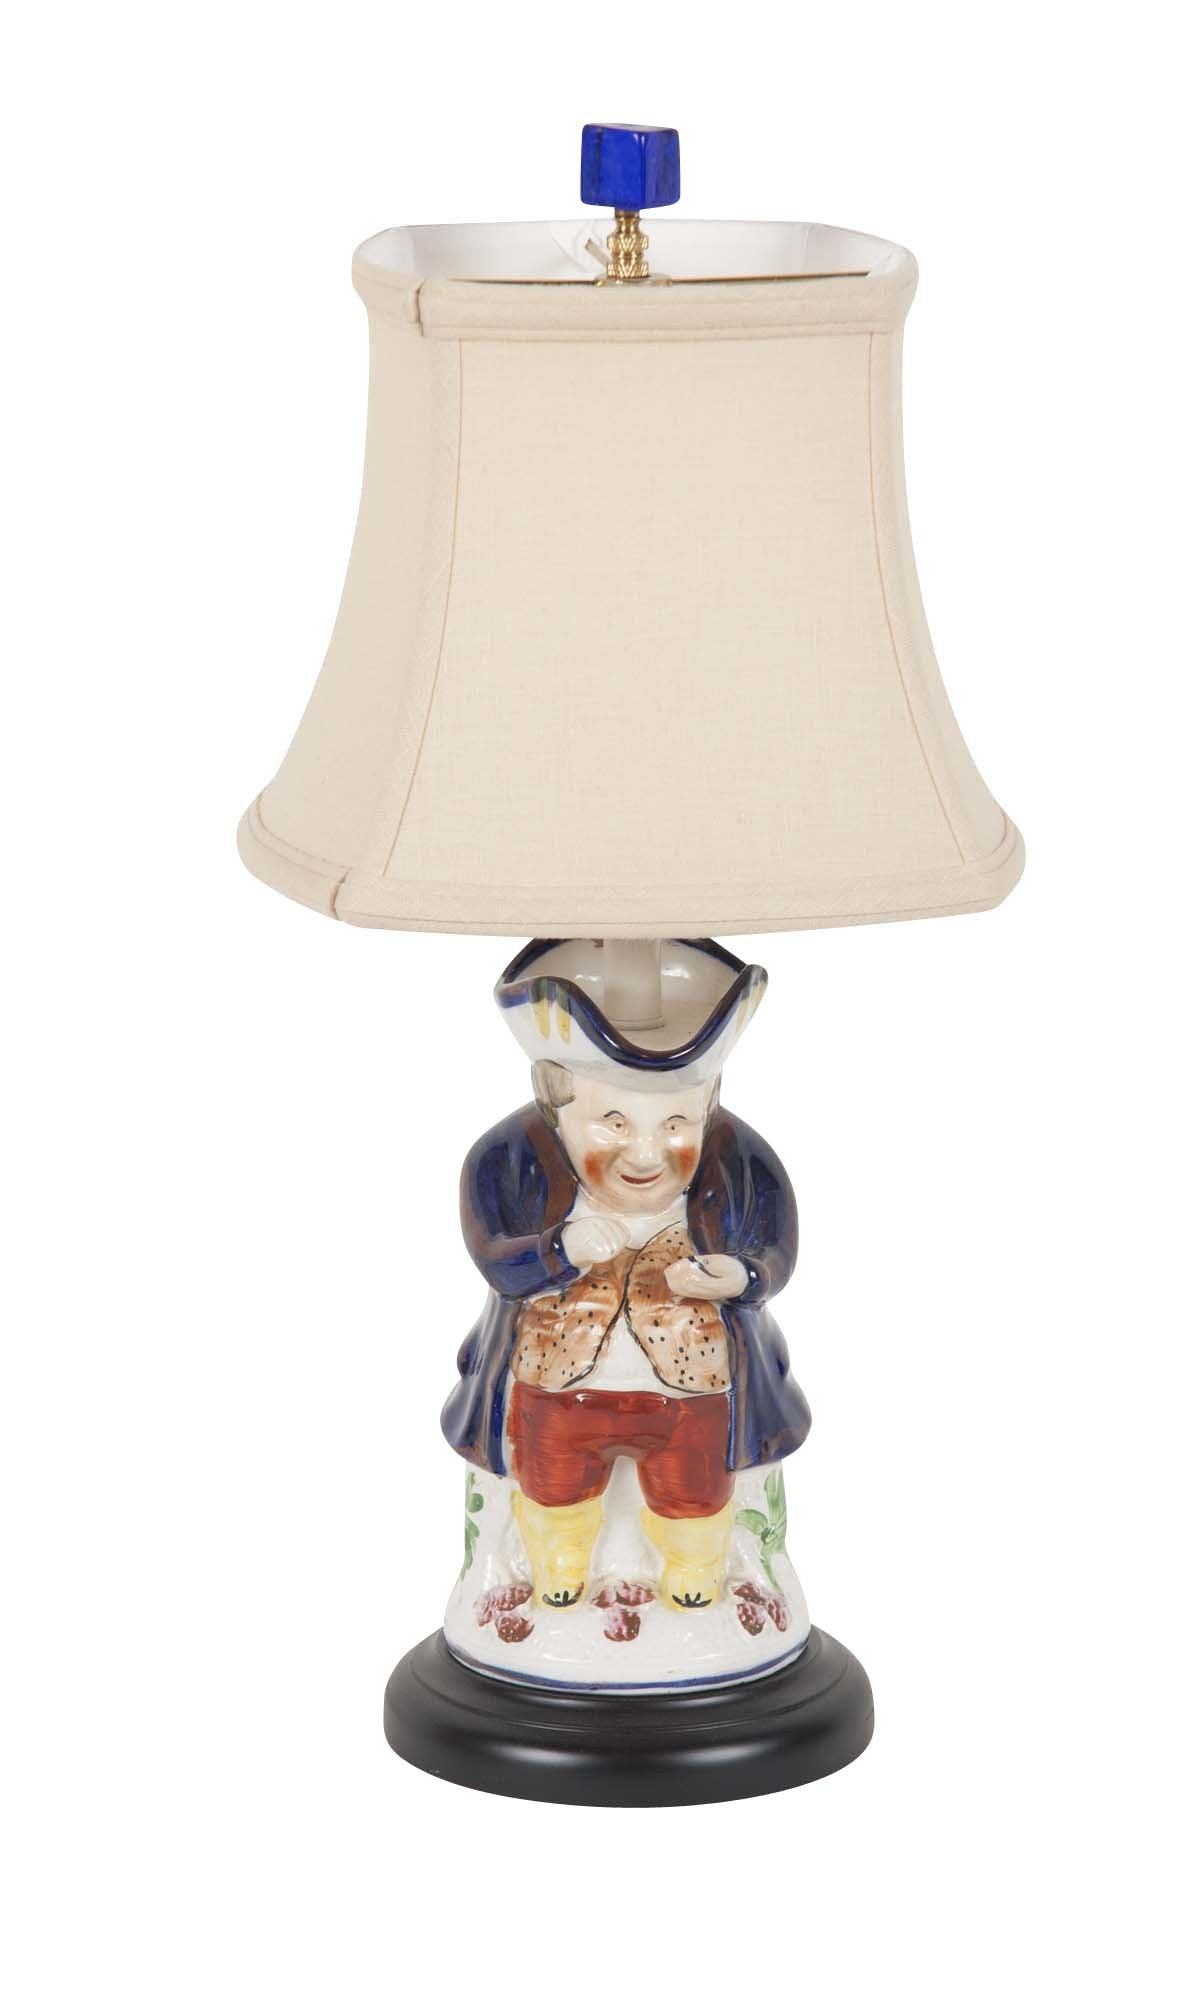 Antique Toby Jug as a Lamp